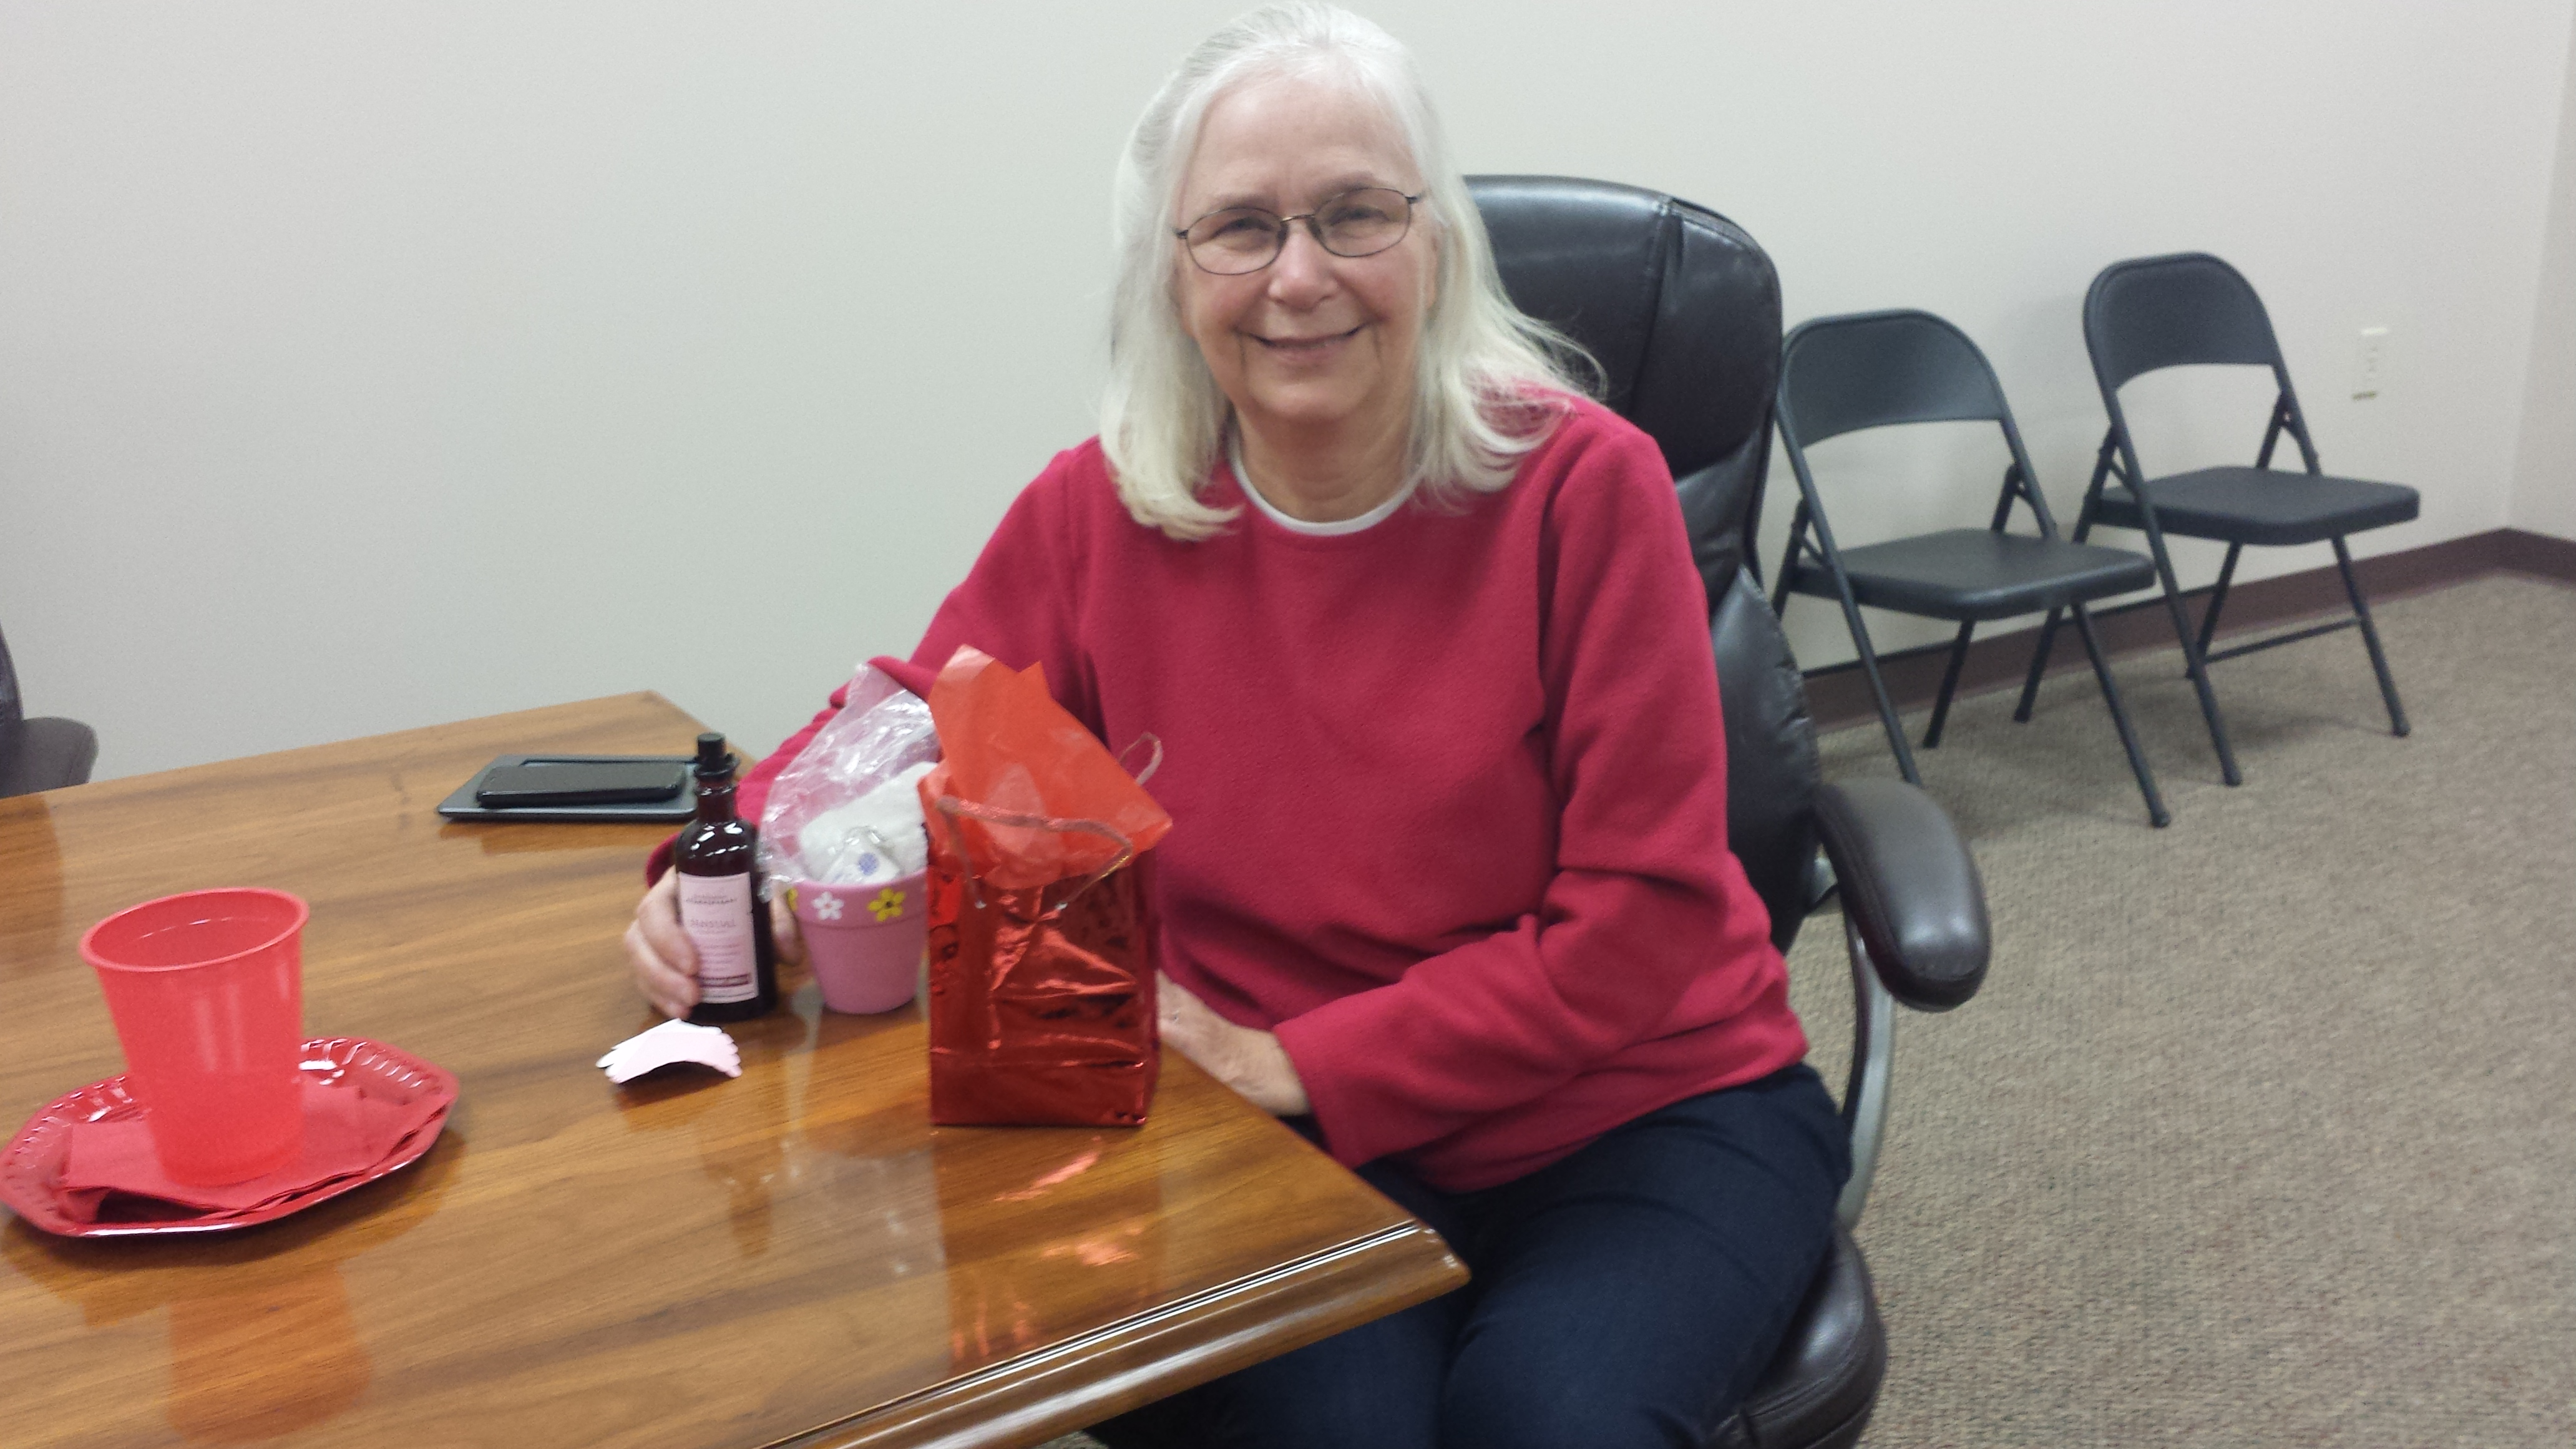 Carolyn Tadlock won the prize at the meeting held at the Pleasant Township Hall